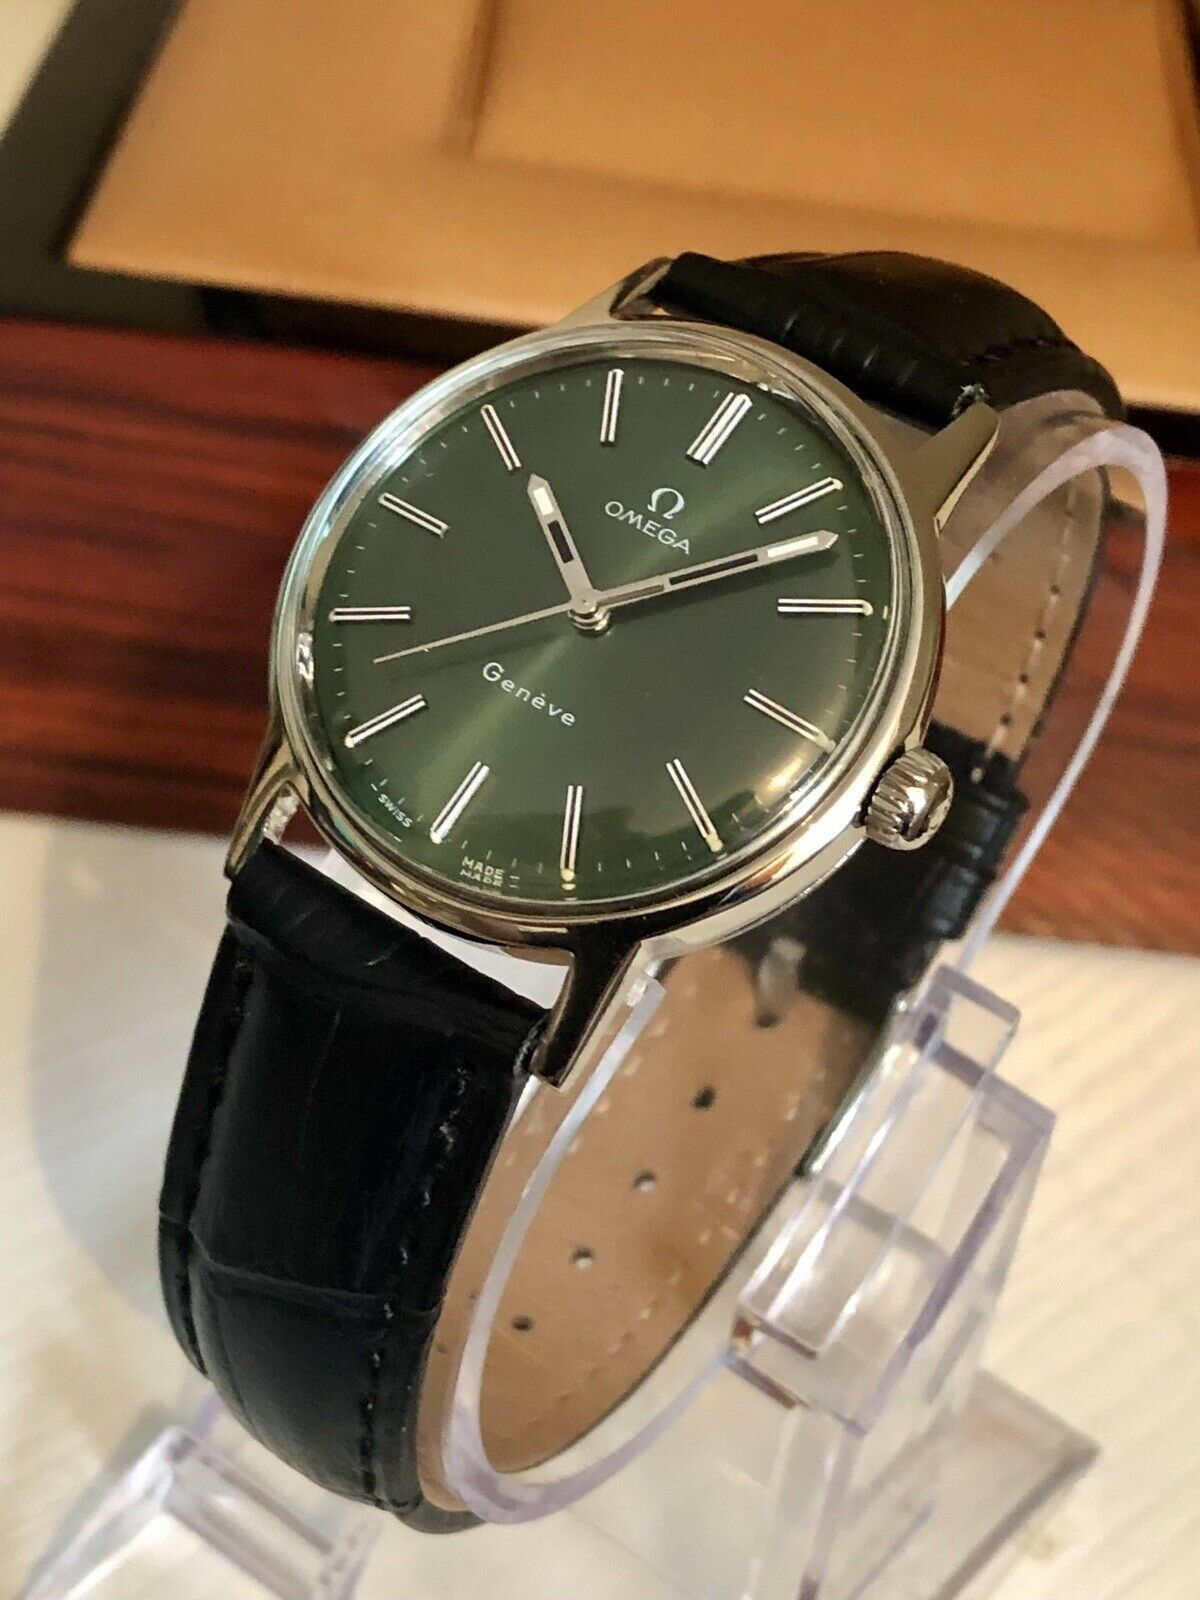 Omega Mens 1960 To 1969 Geneve Green Dial Face Vintage Watch Cal 601 Mechanical Gents Clock Box Omega Man Omega Vintage Watches